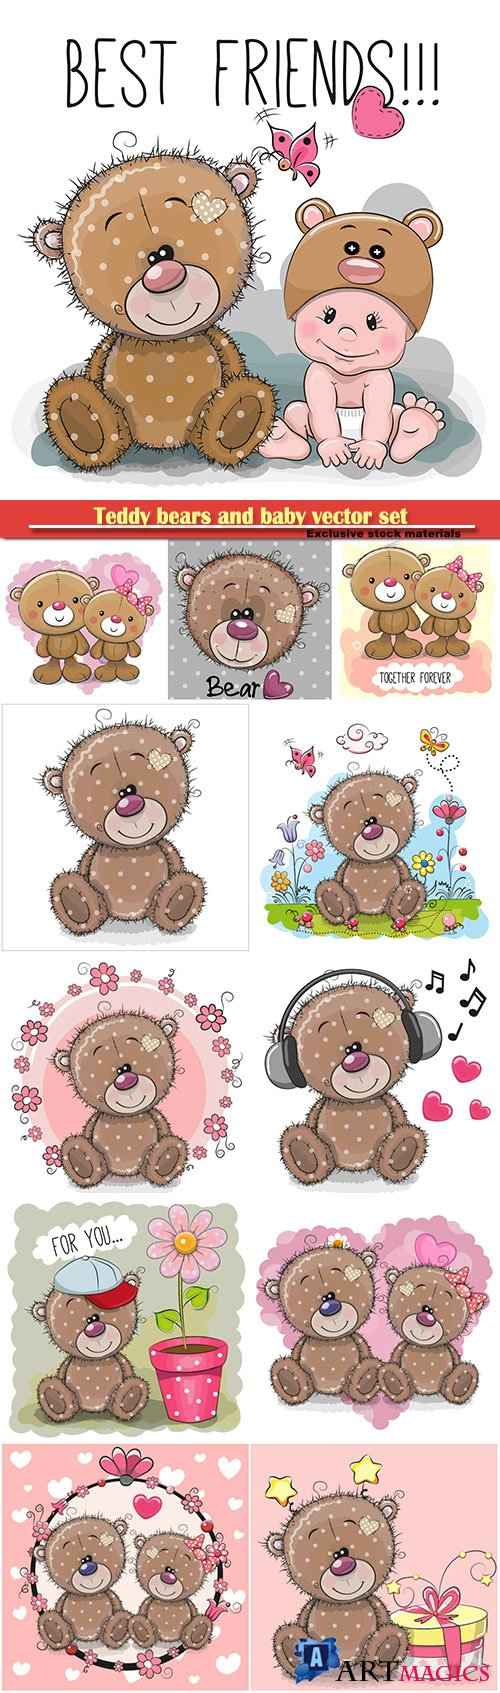 Teddy bears and baby vector set